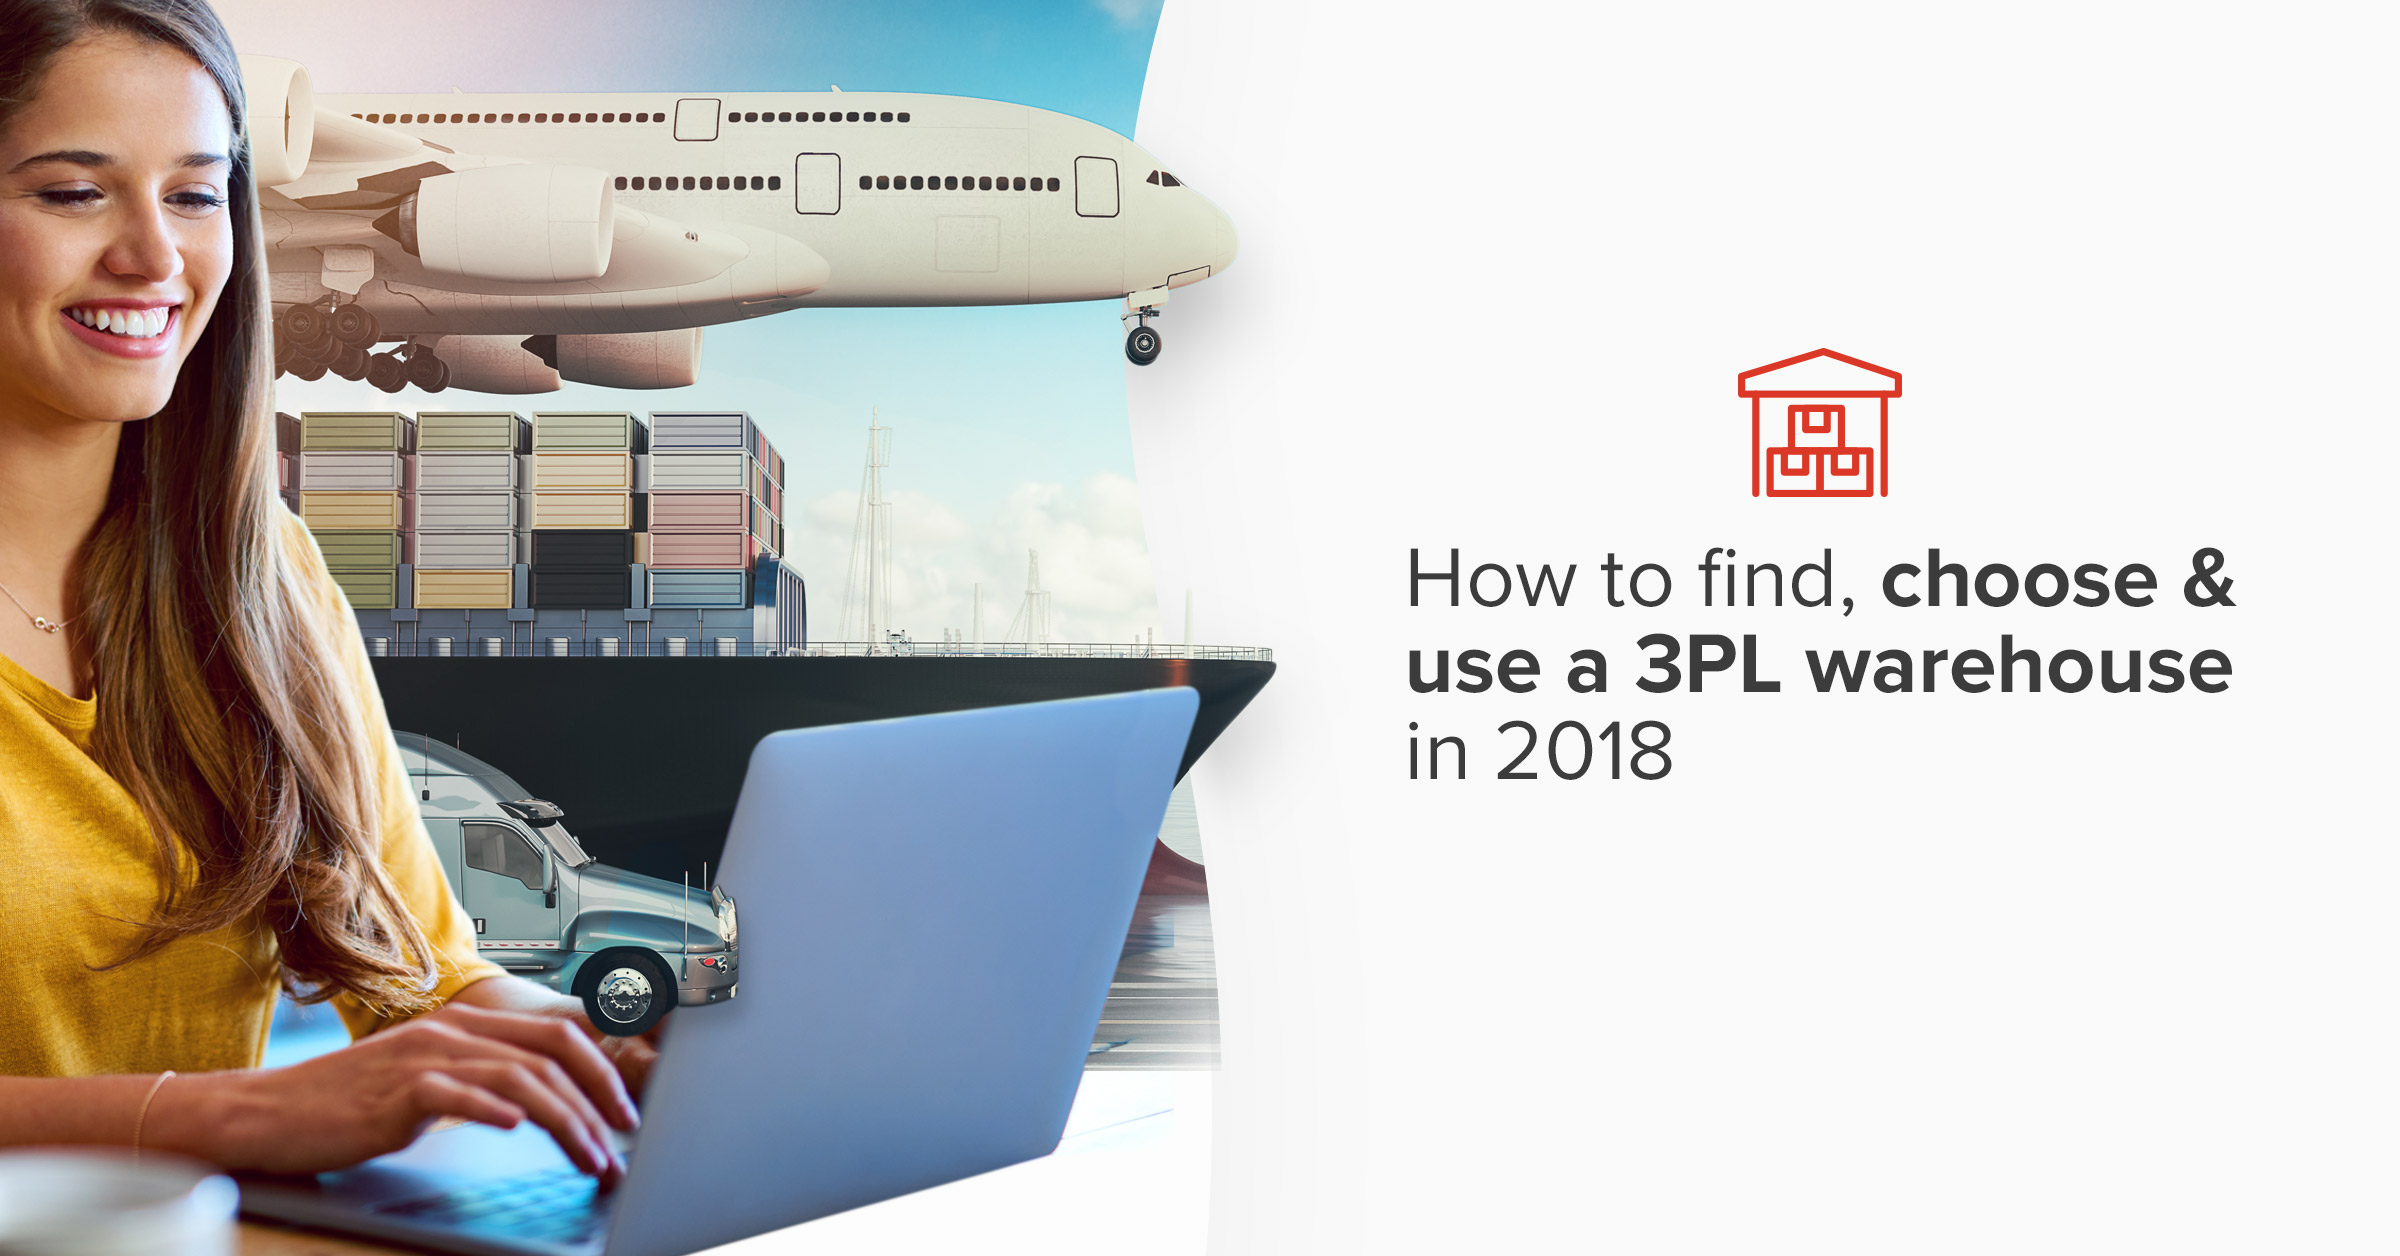 bold-blog-how-to-find-choose-&-use-a-3pl-warehouse-in-2018